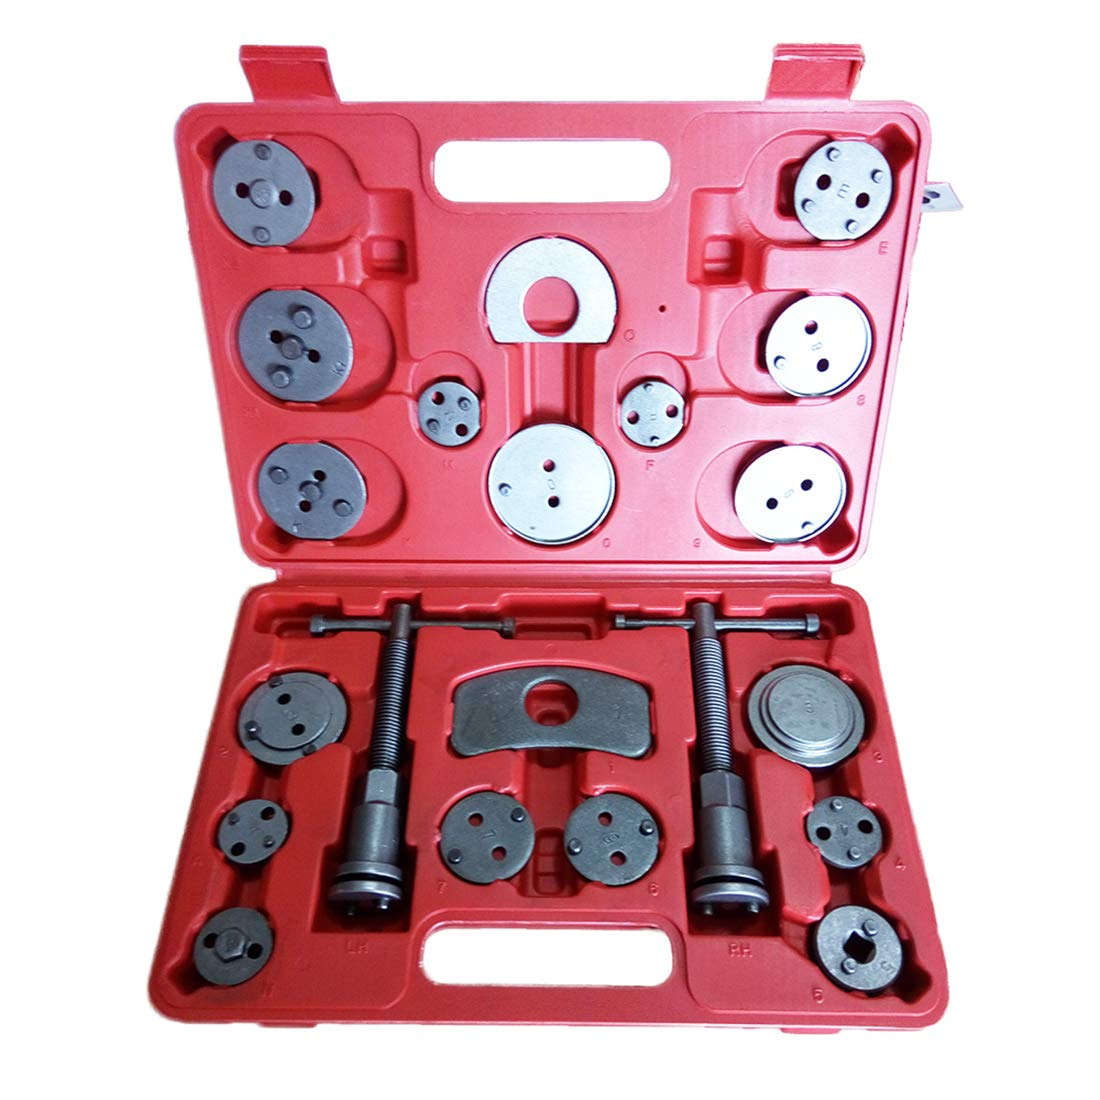 Auto DN Universal 21pcs Heavy Duty Disc Brake Caliper Compressor Tool Set and Piston Compression Sets Fits Almost All Cars